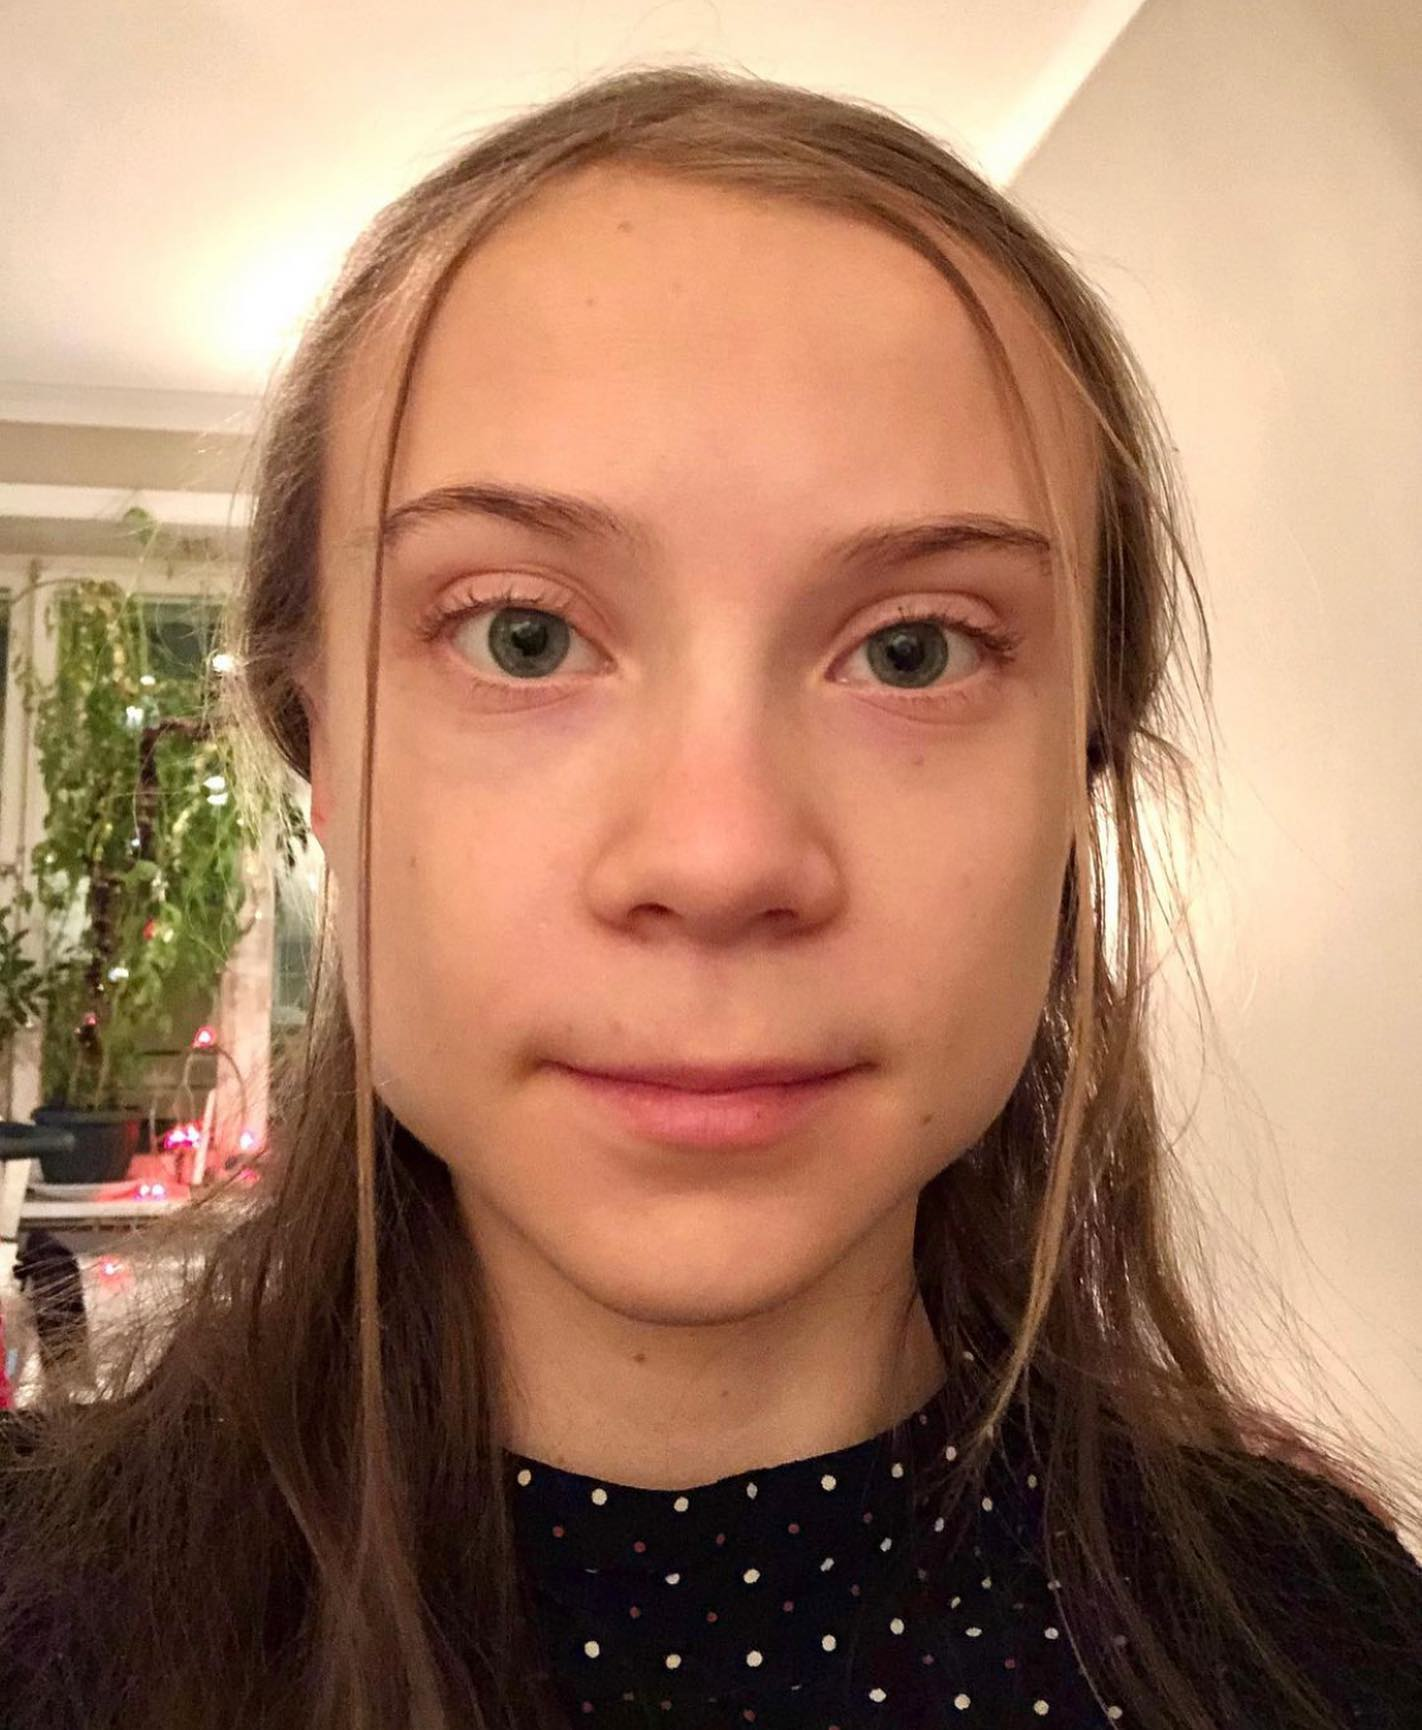 Greta Thunberg discussing being Autistic on Autism Awareness Day, posted by Outshine Labels Blog